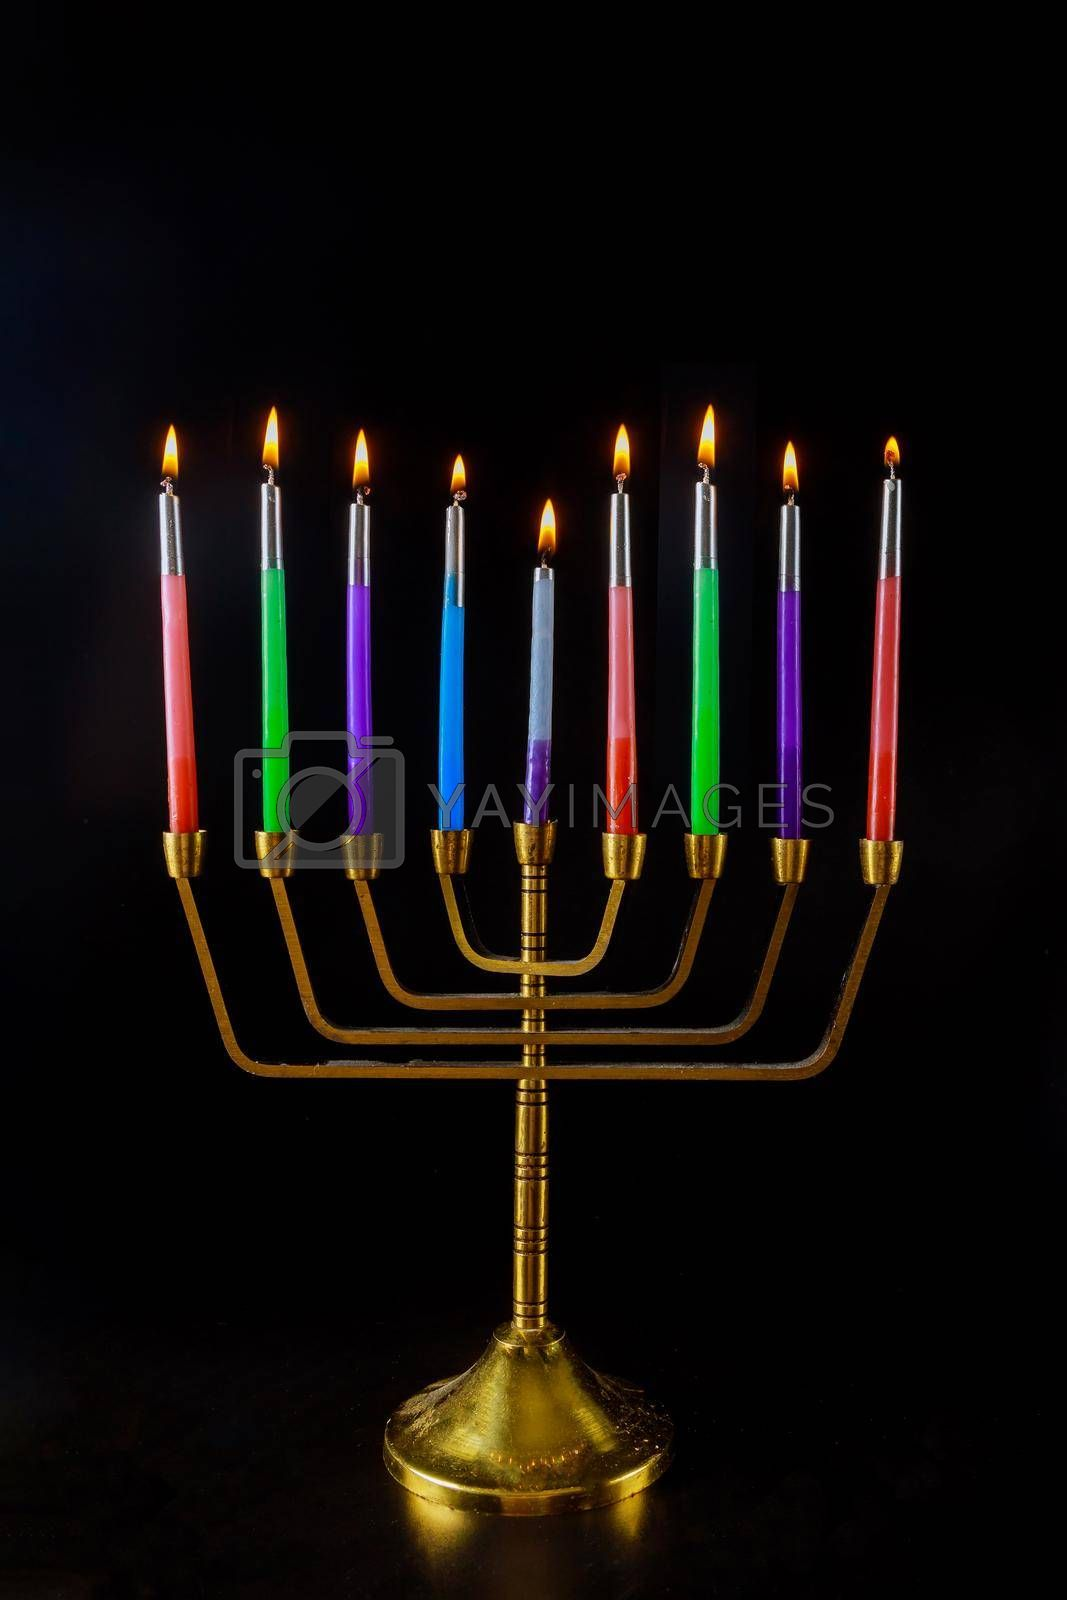 Religion symbol of Menorah with burned out candles for Hanukkah in Jewish holiday